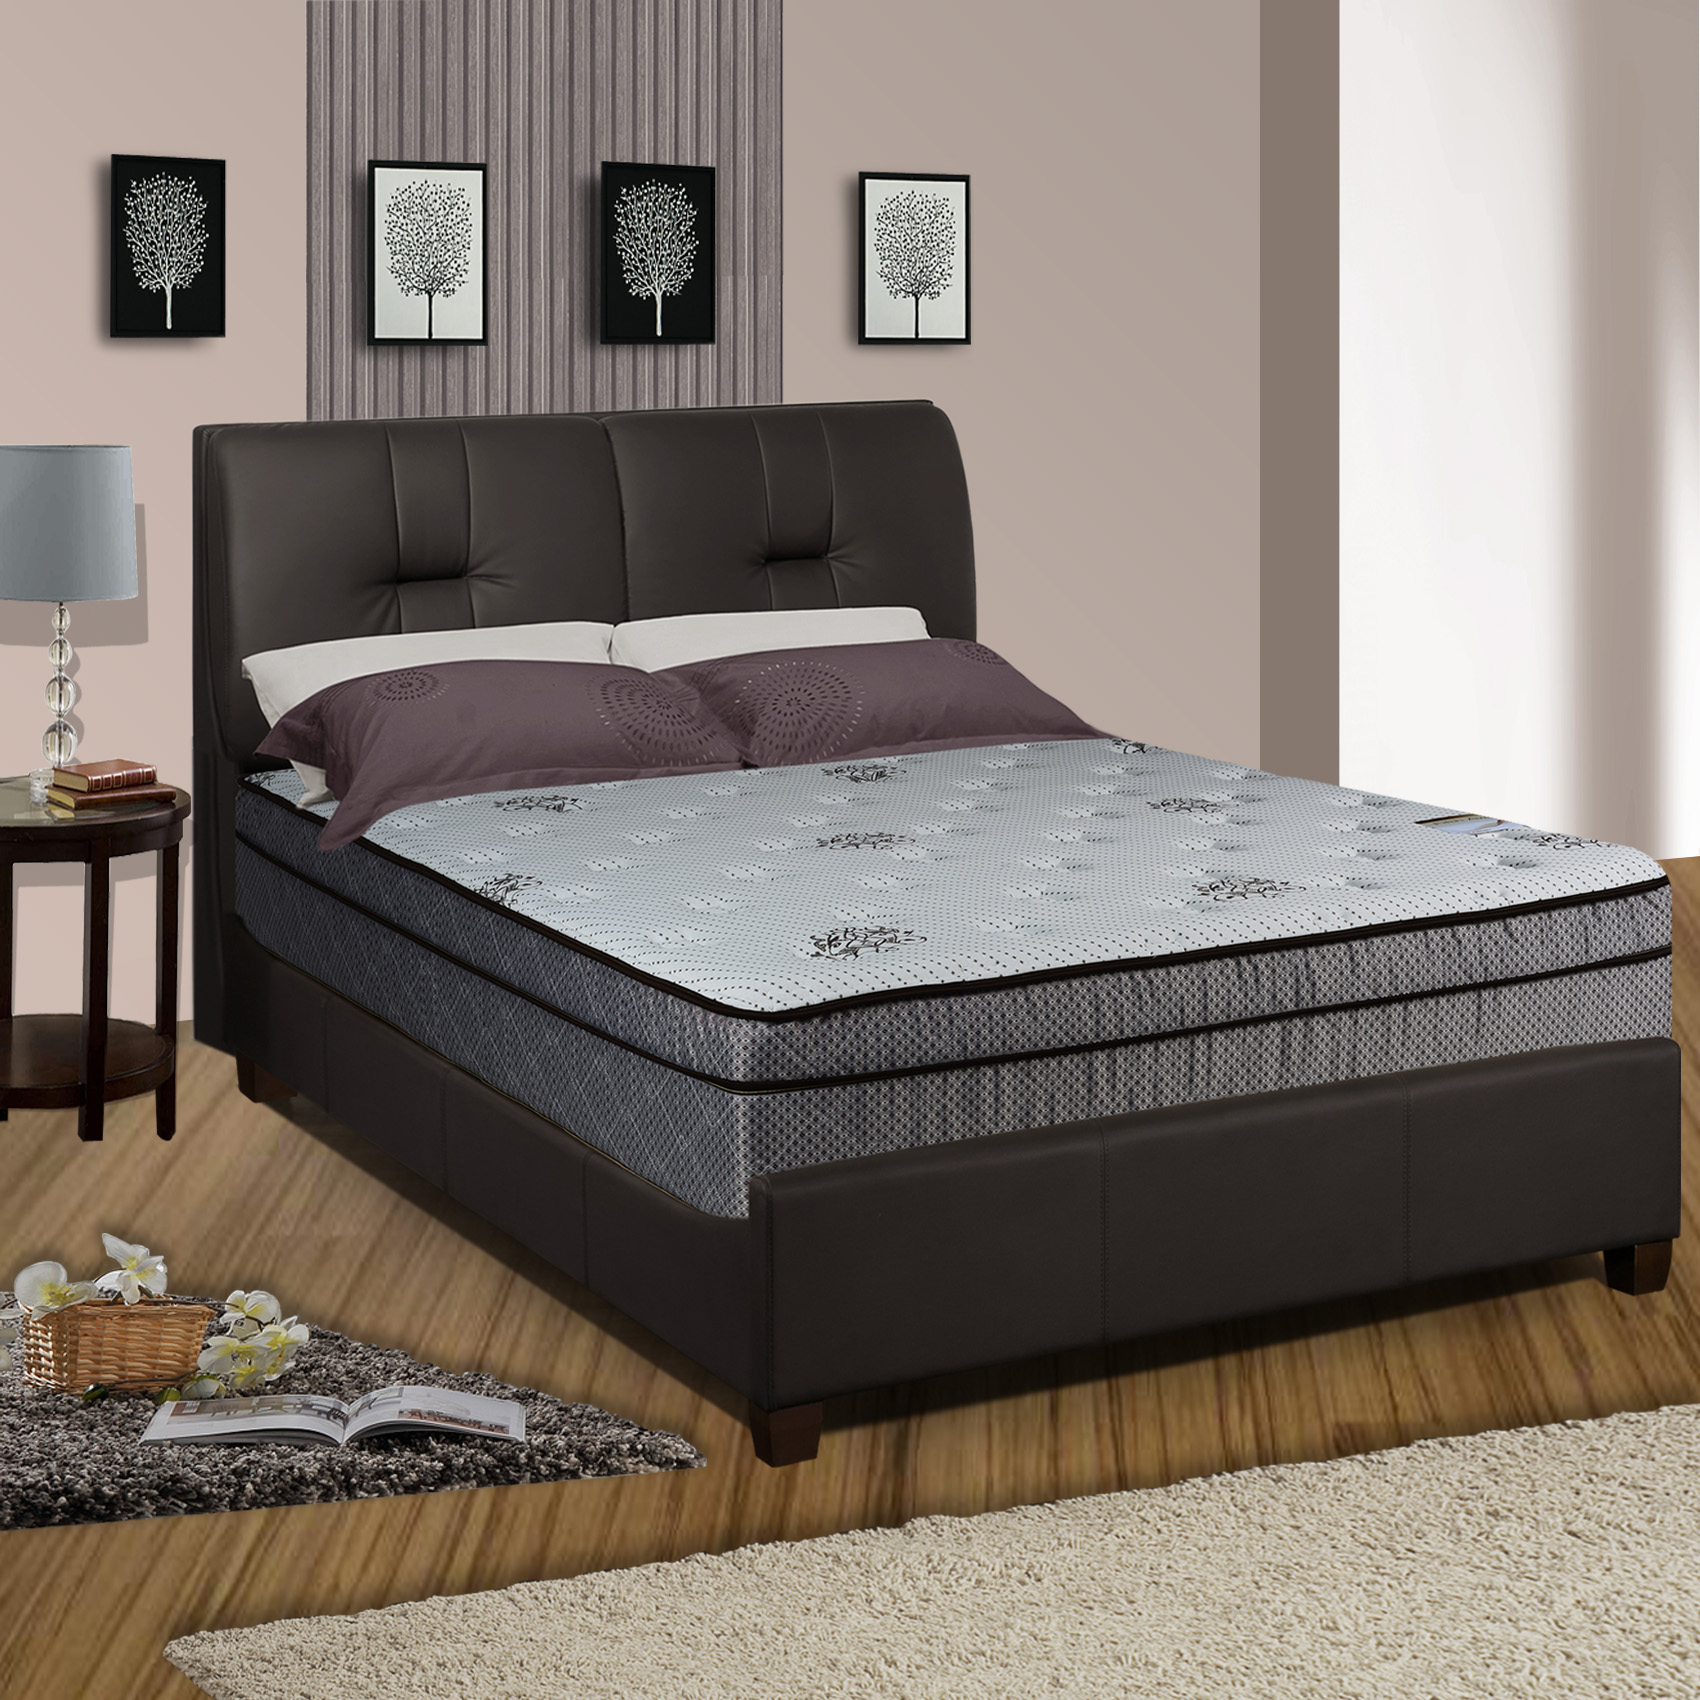 Continental Sleep, 13-inch Fully Assembled Innerspring Soft Mattress, Twin Size